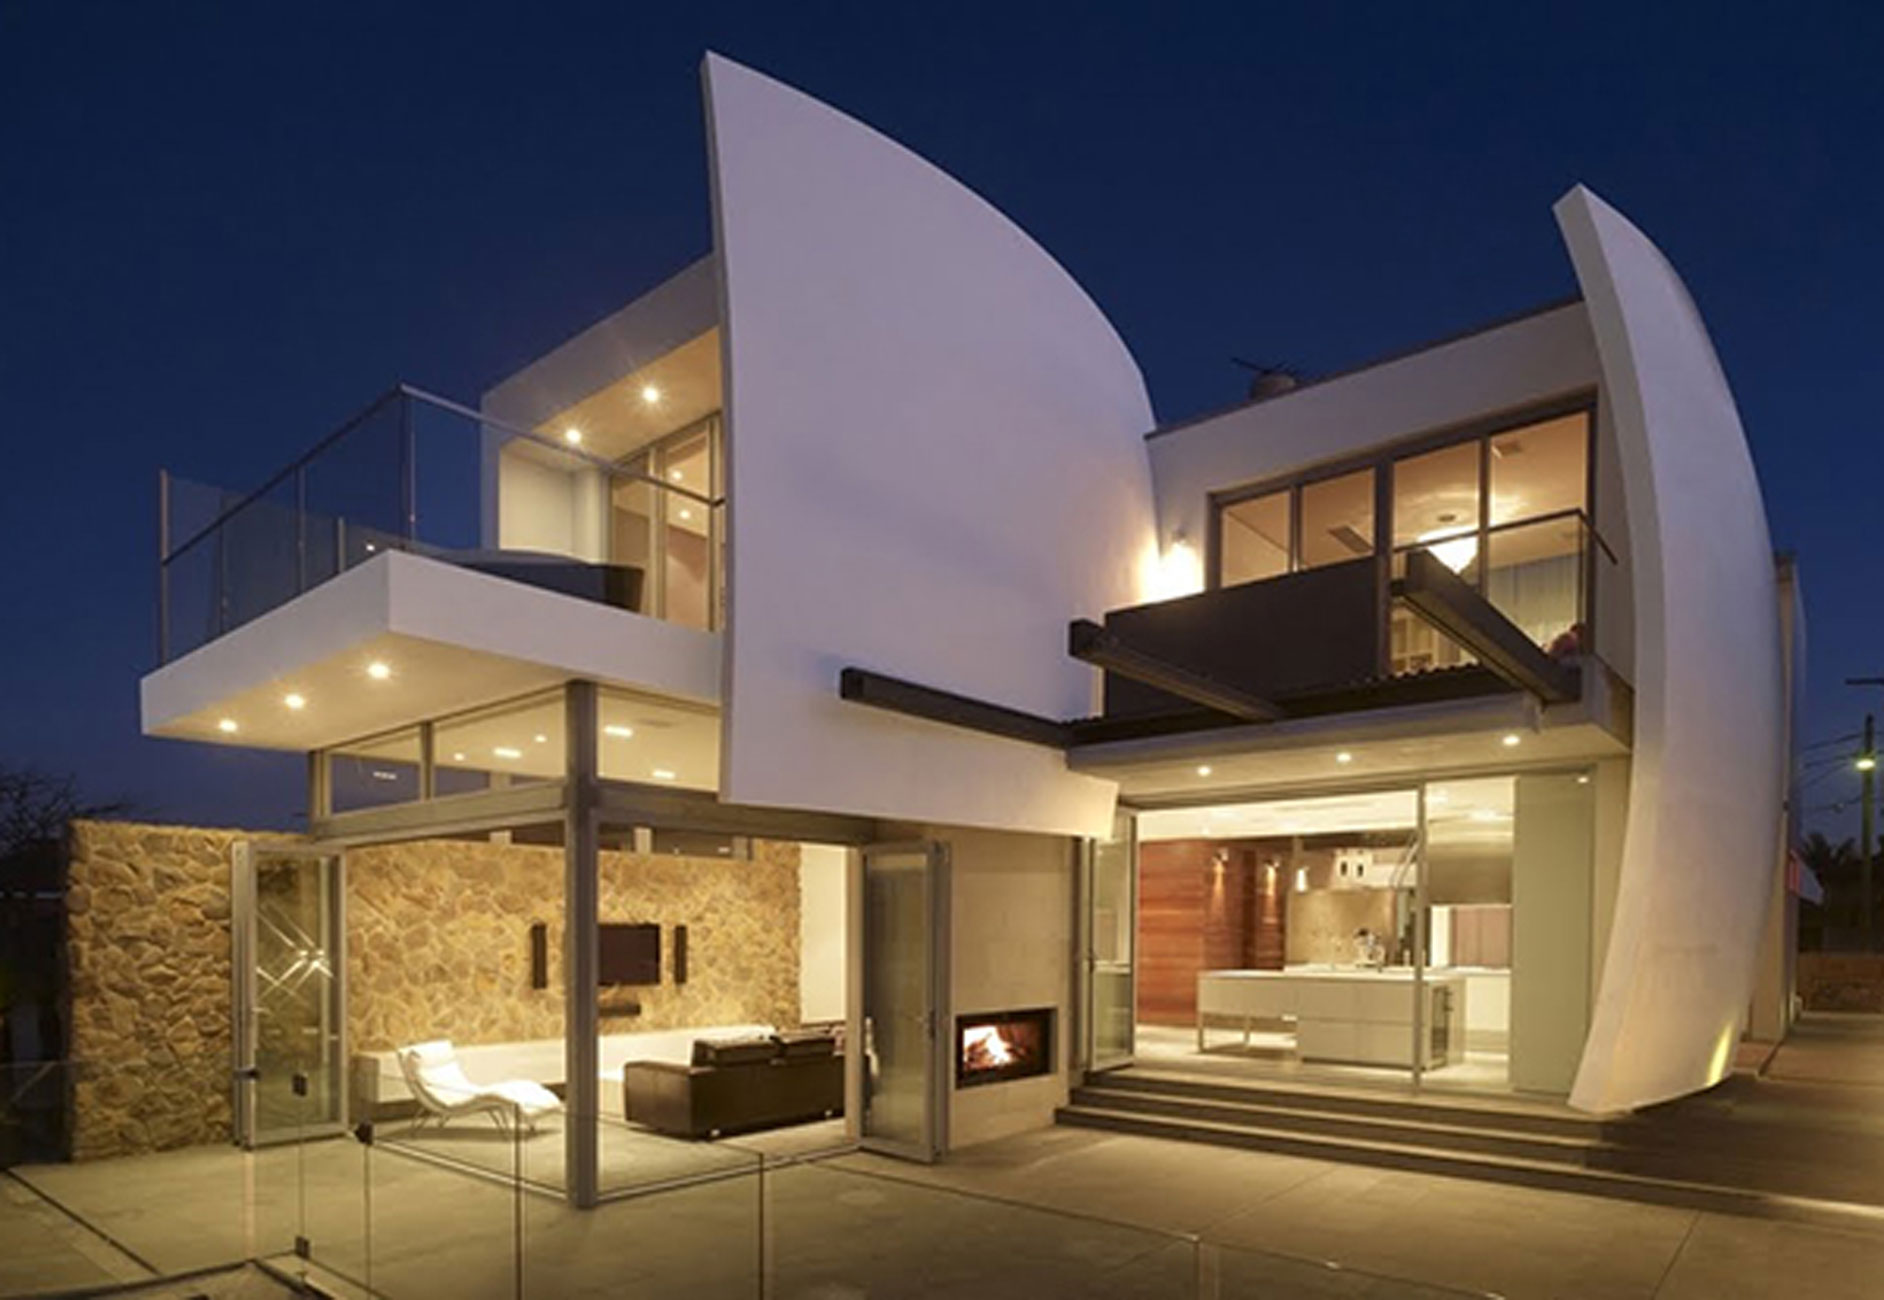 Compact Architecture Homes Architectural Design Homes Architectural - Architecture  design homes architecture house design